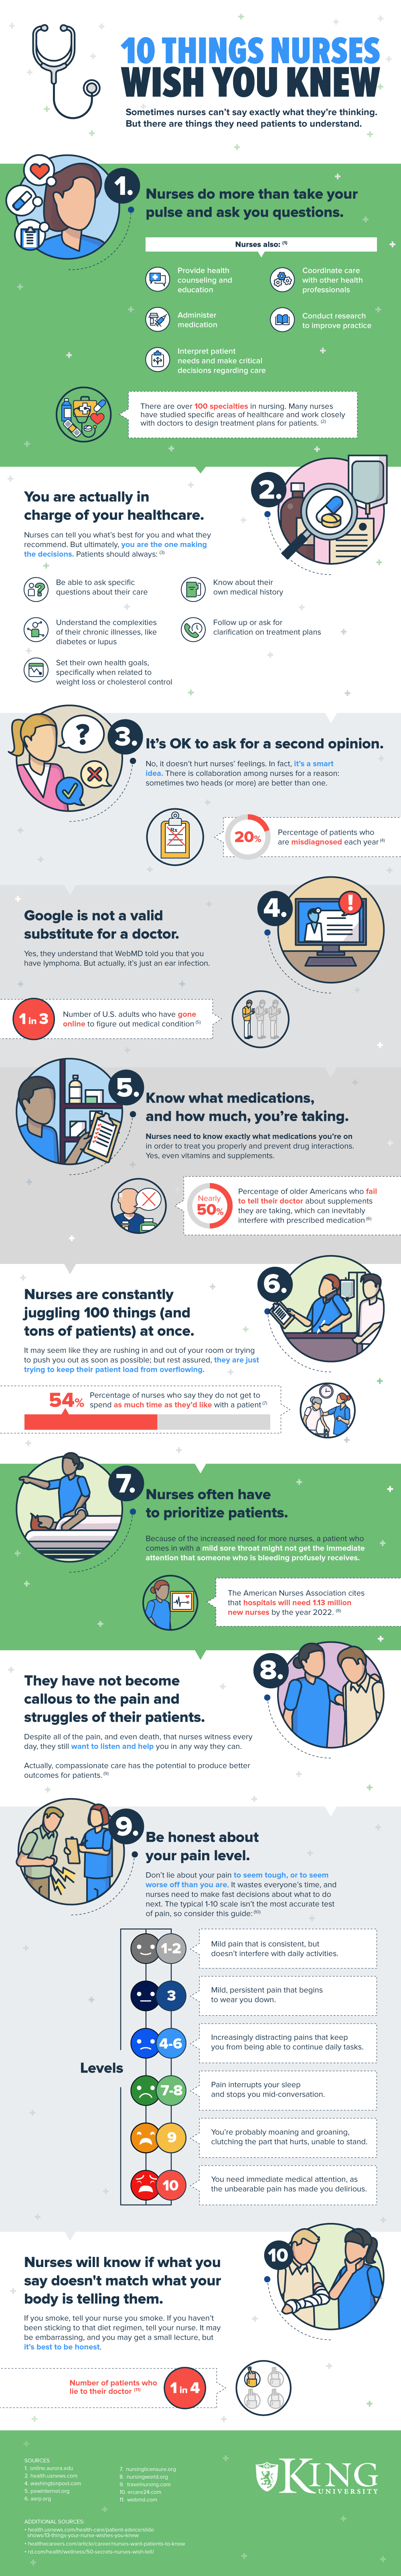 10 Things Patients Should Know About Modern Nursing - Infographic